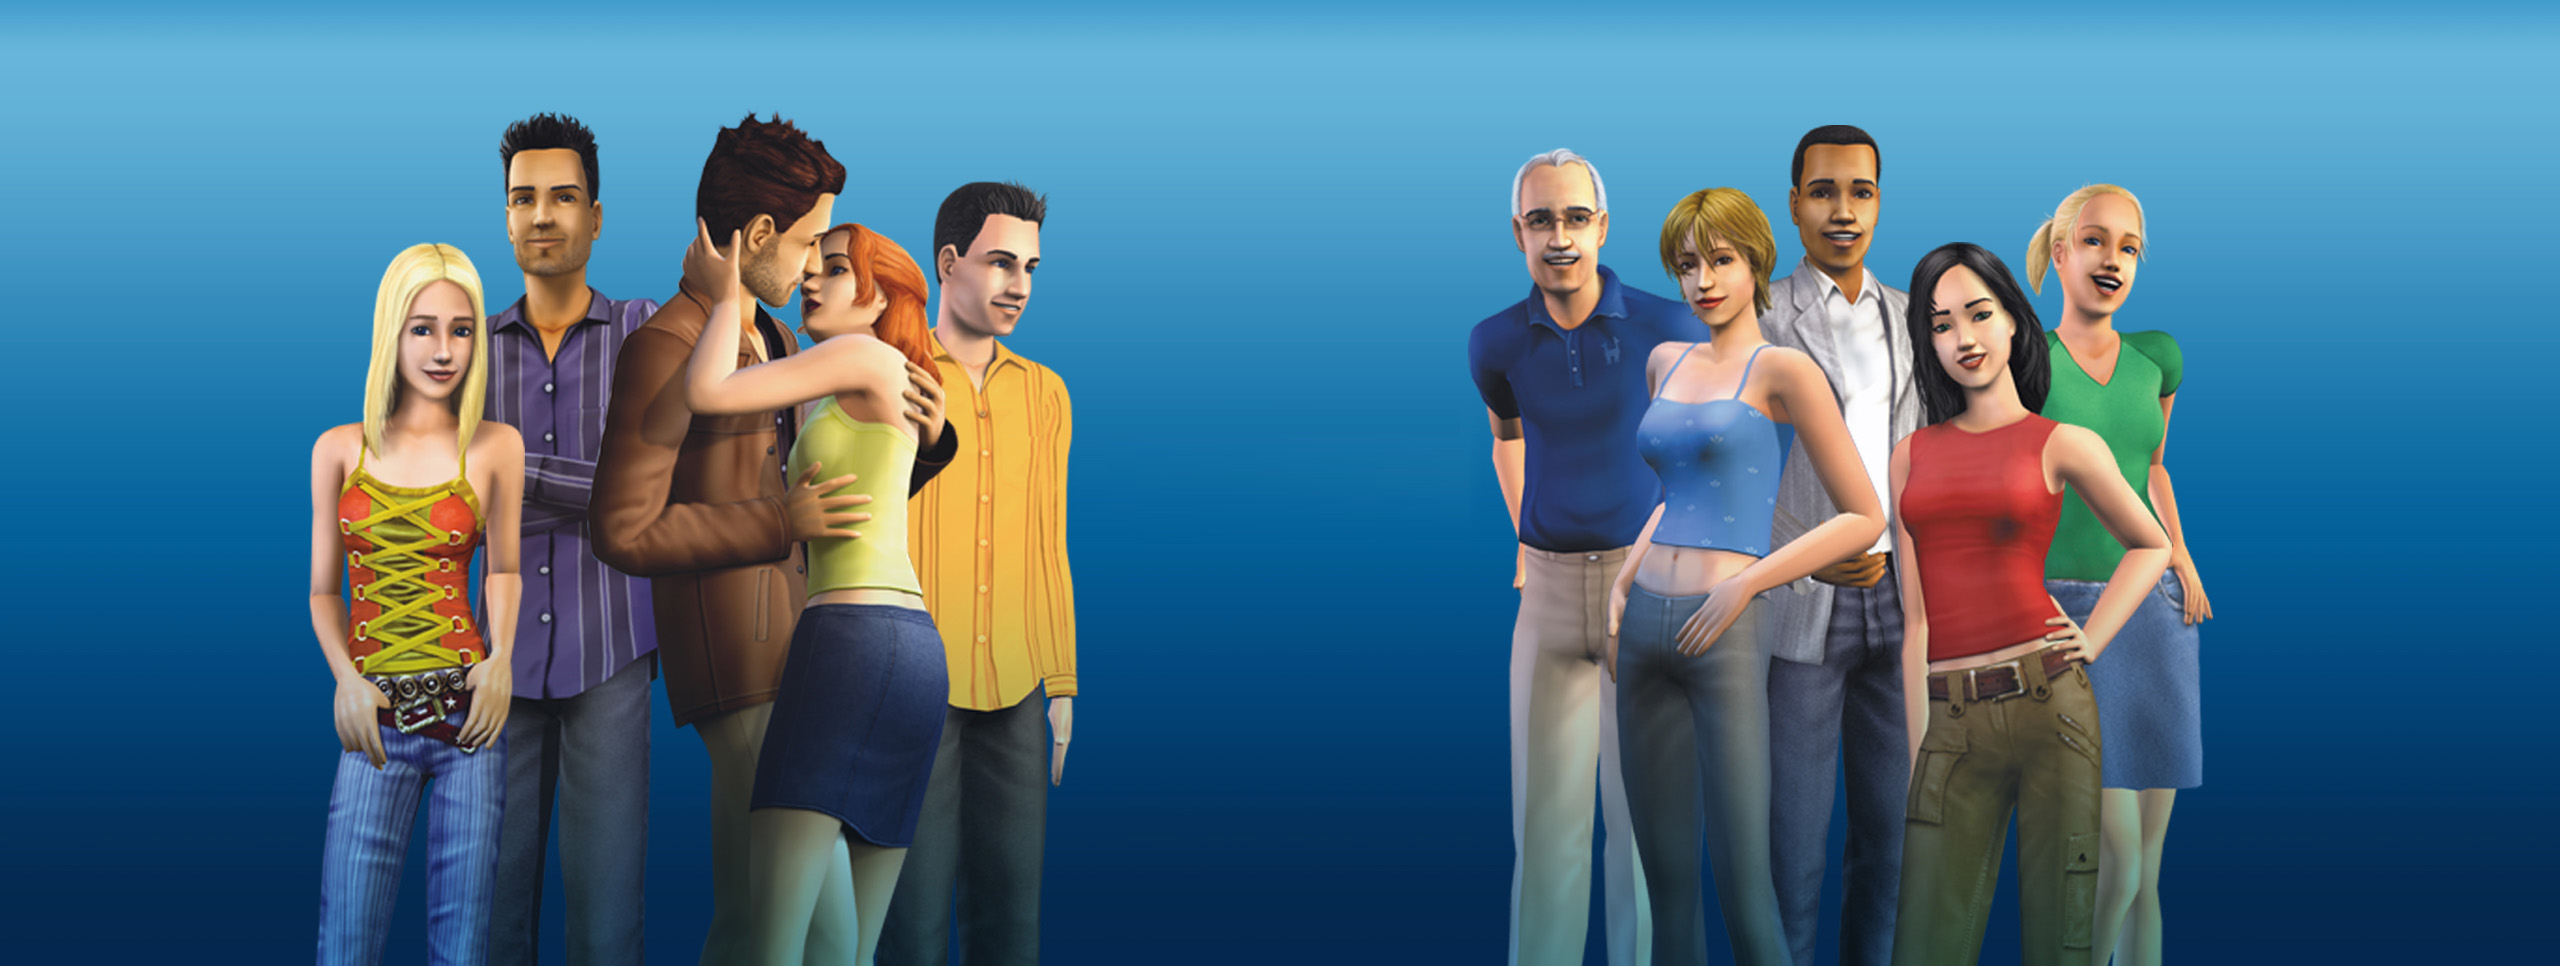 Sims2_Banner copy